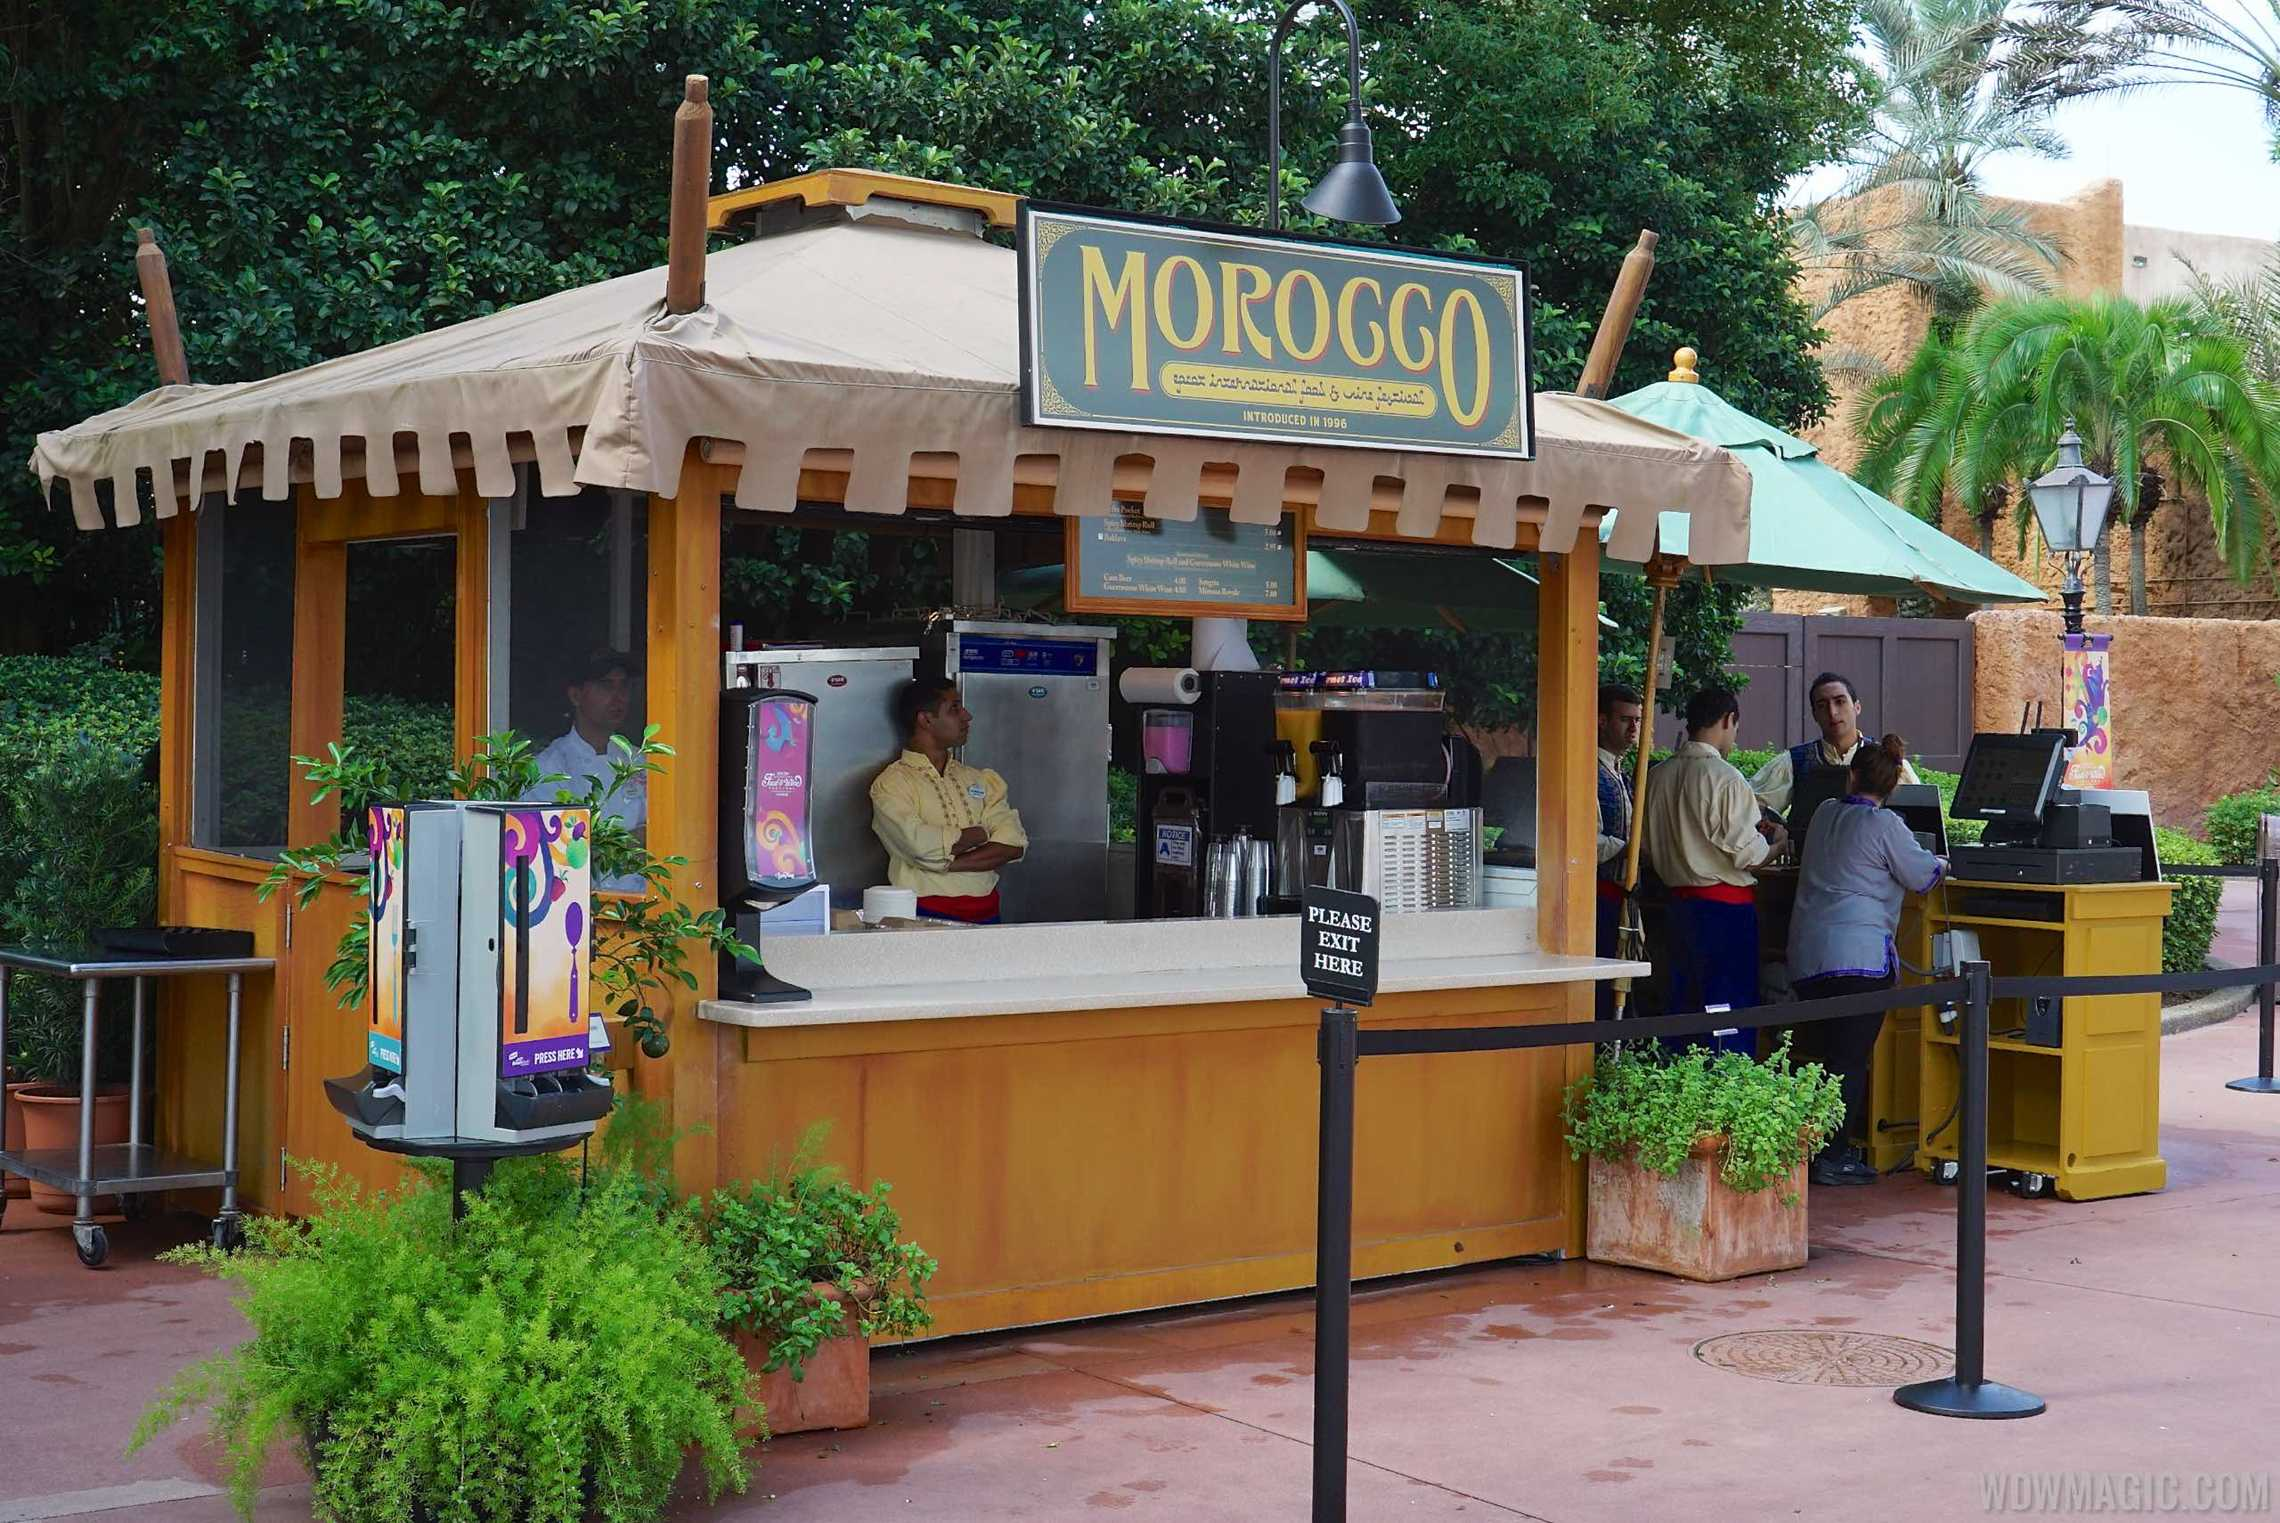 Morocco Food and Wine kiosk